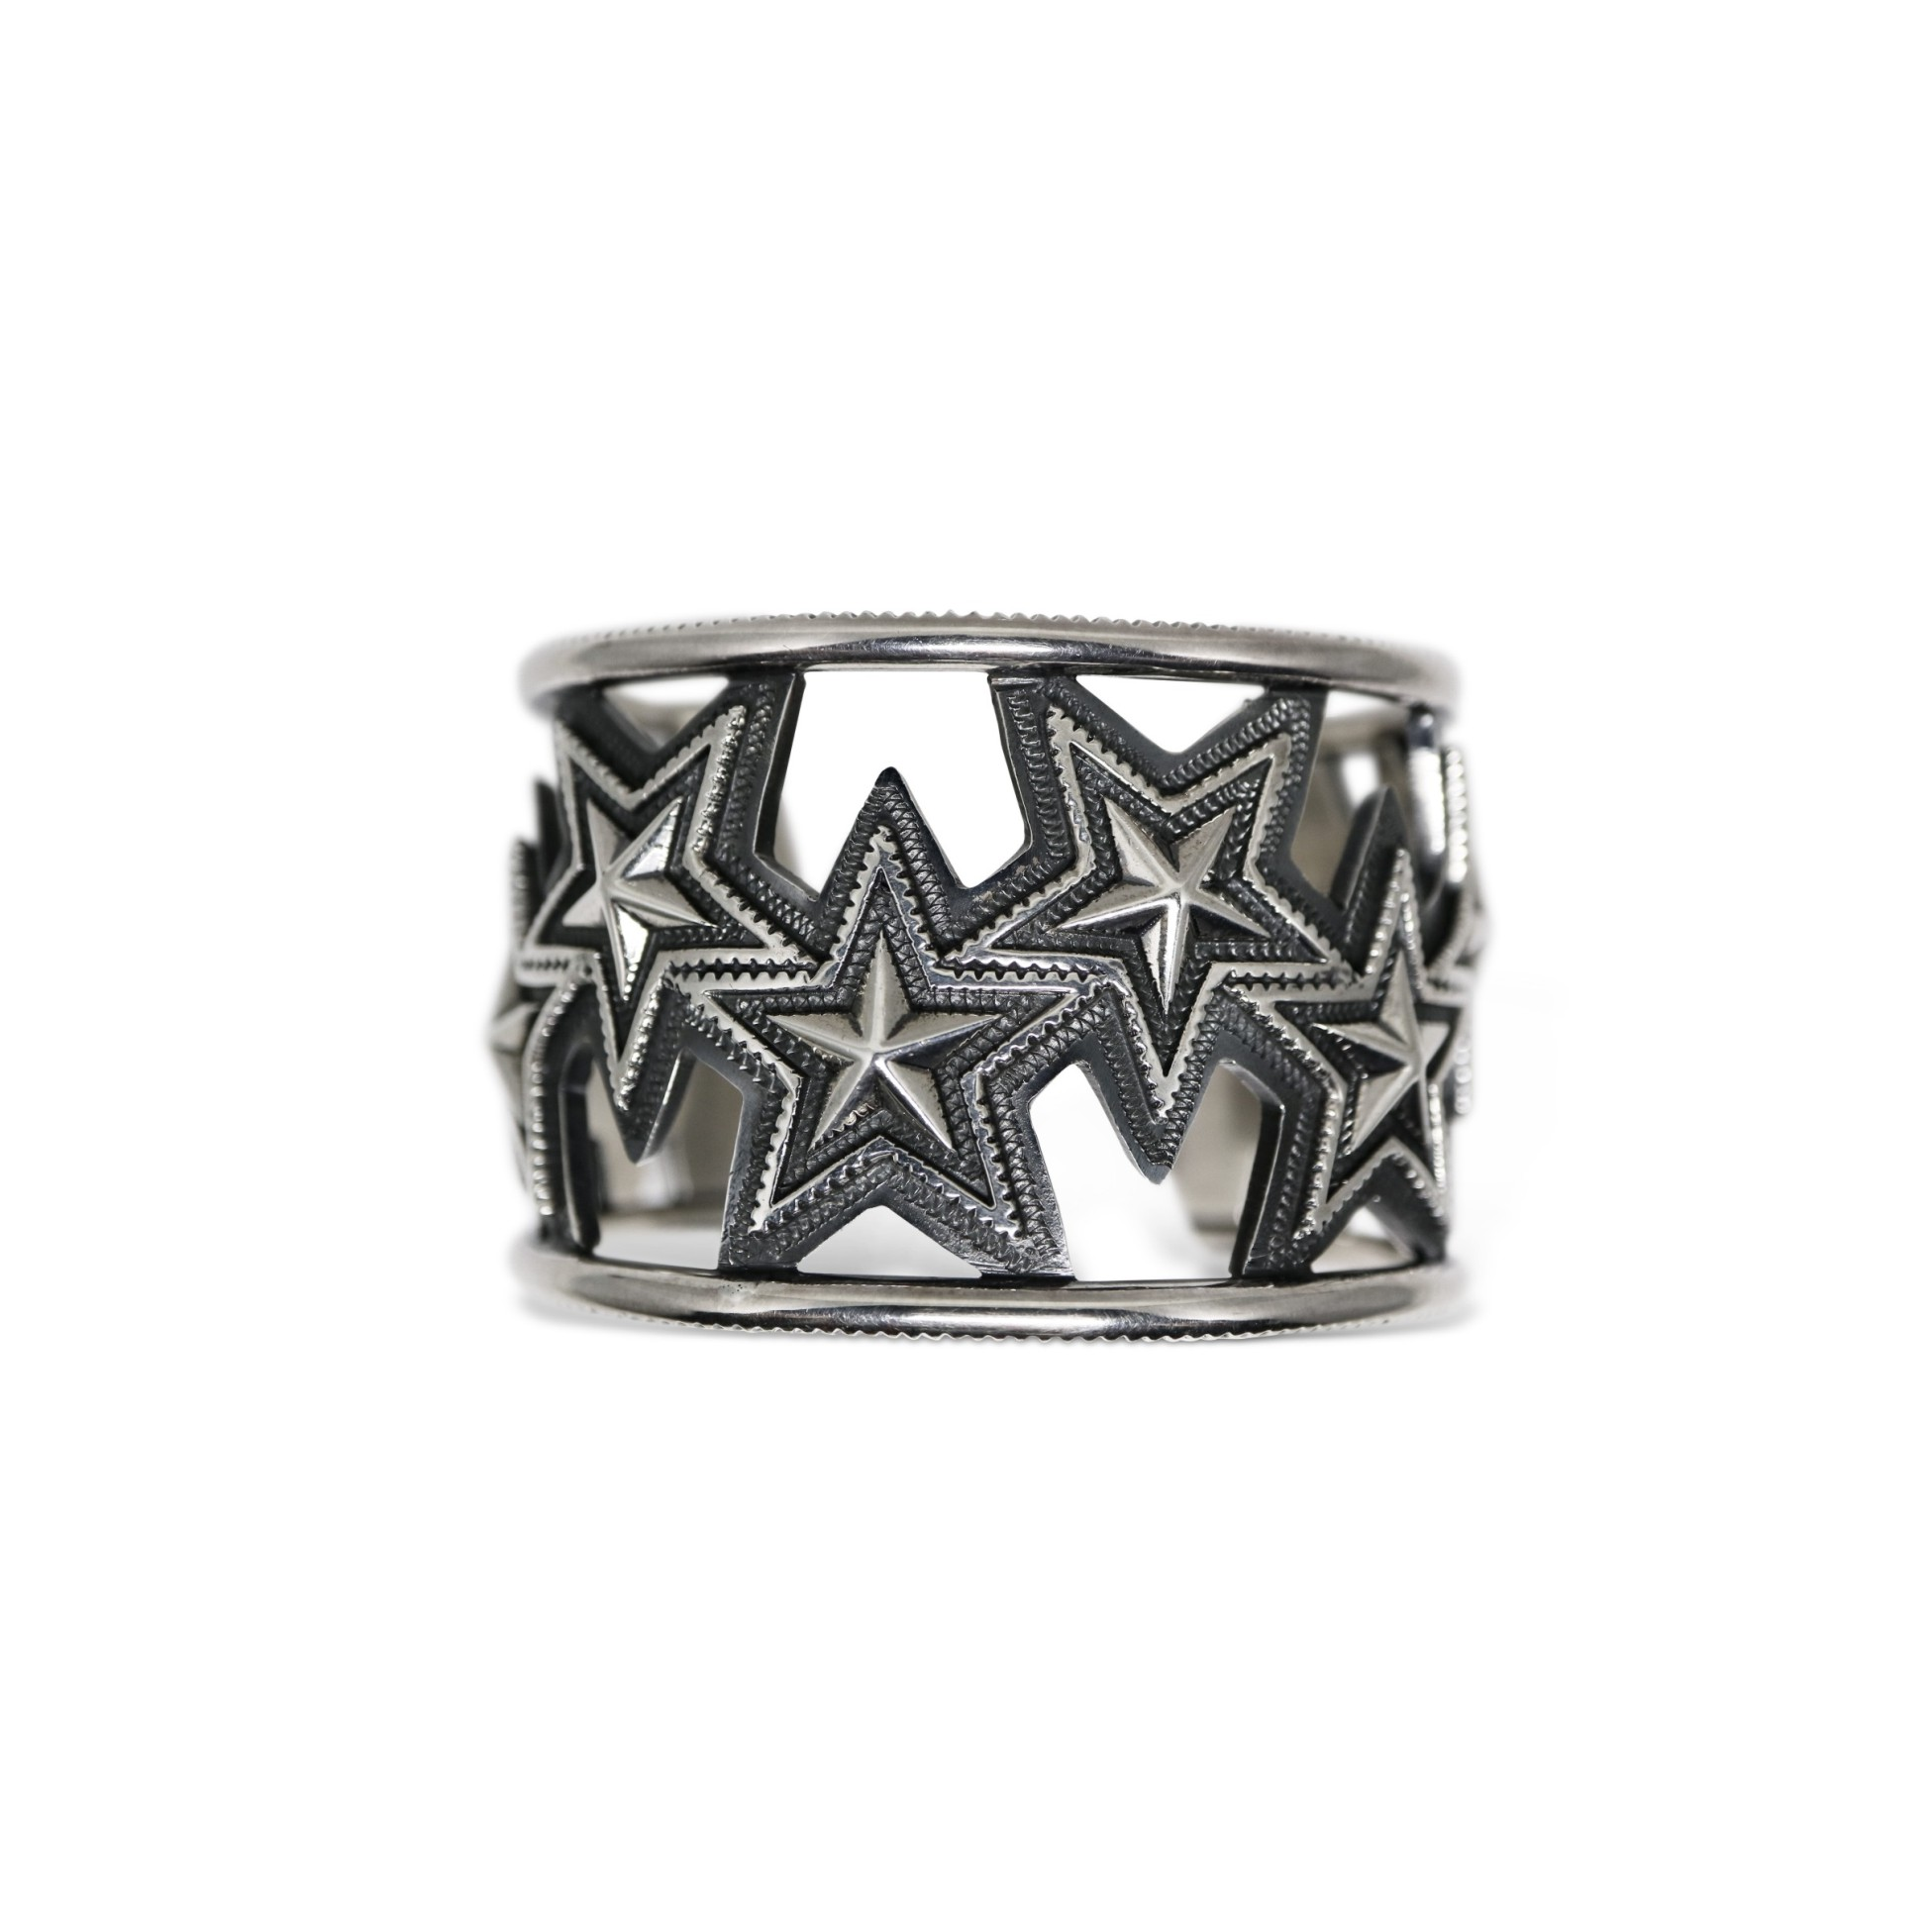 CUT OUT OPPOSING STAR CUFF   [USD $3770]